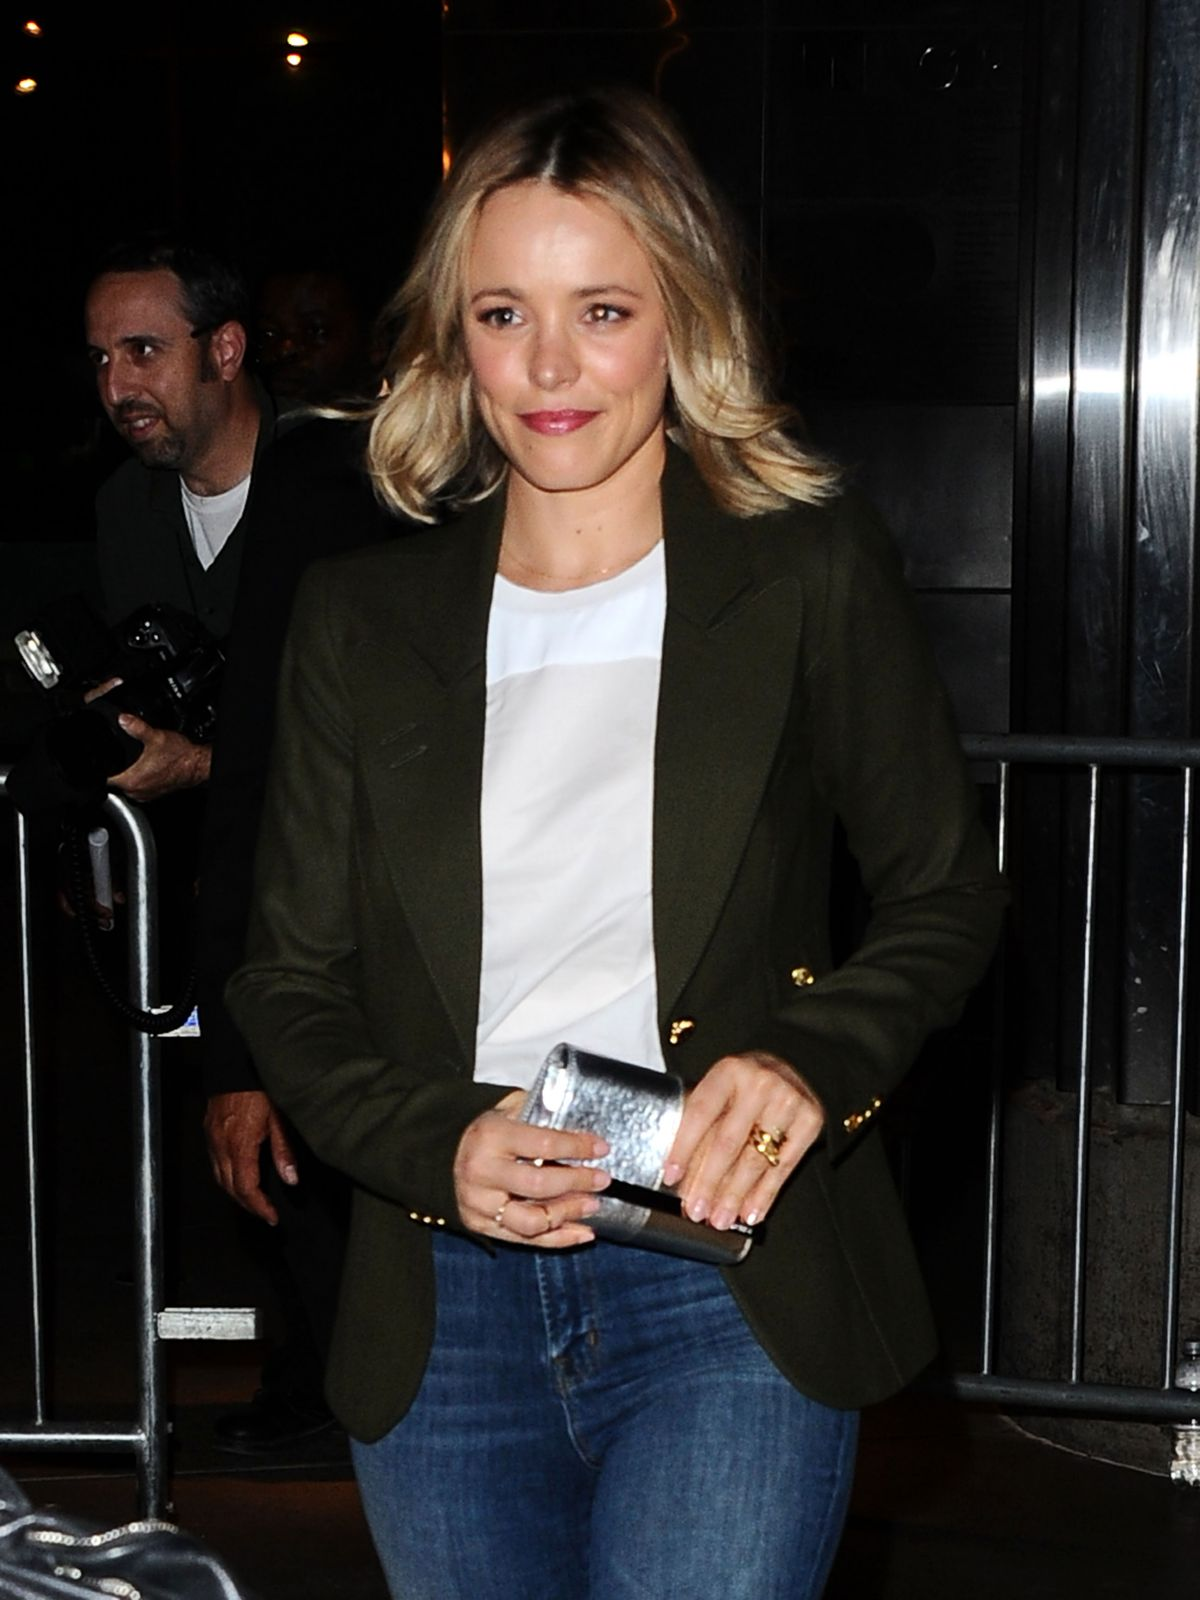 RACHEL MCADAMS at 'Voyage of Time: The IMAX Expereince' Premiere in Los Angeles 09/28/2016